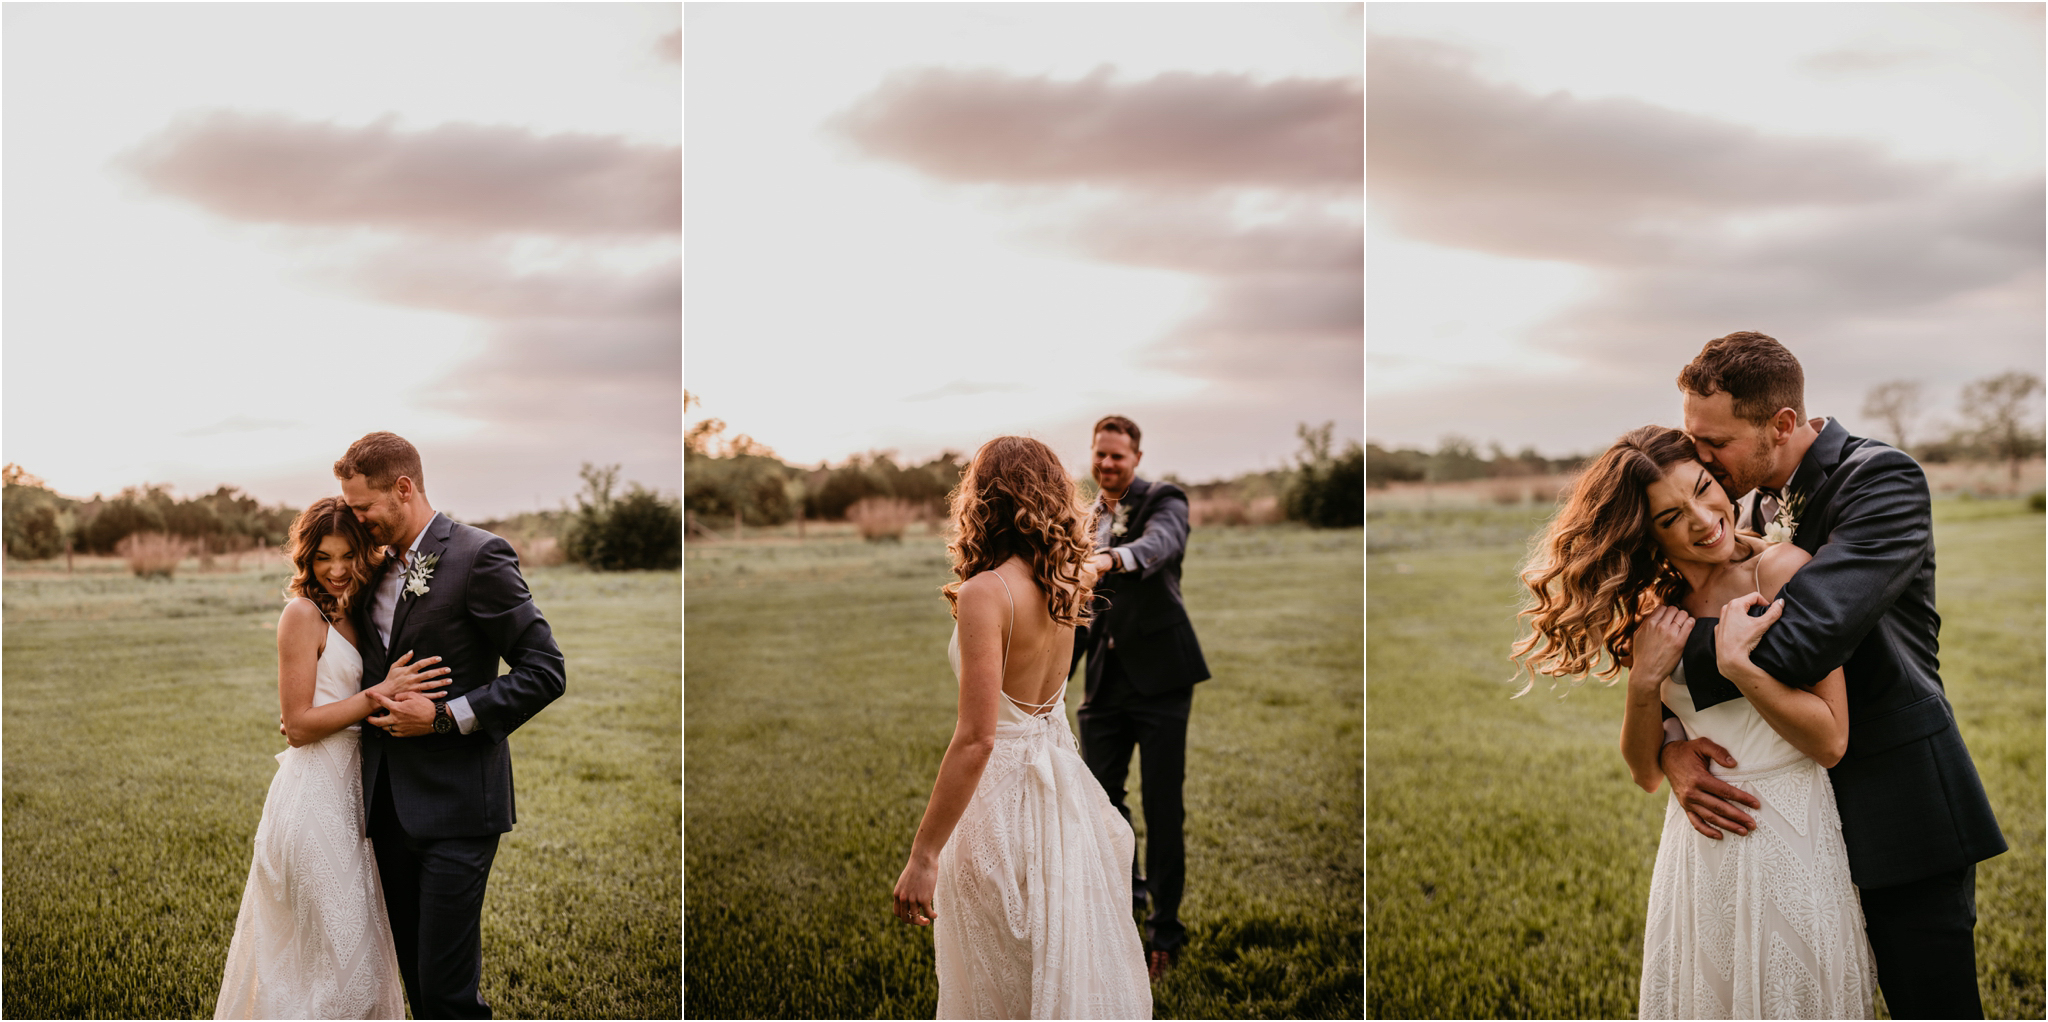 jillian-and-scott-pecan-springs-ranch-texas-and-washington-wedding-photographer-106.jpg